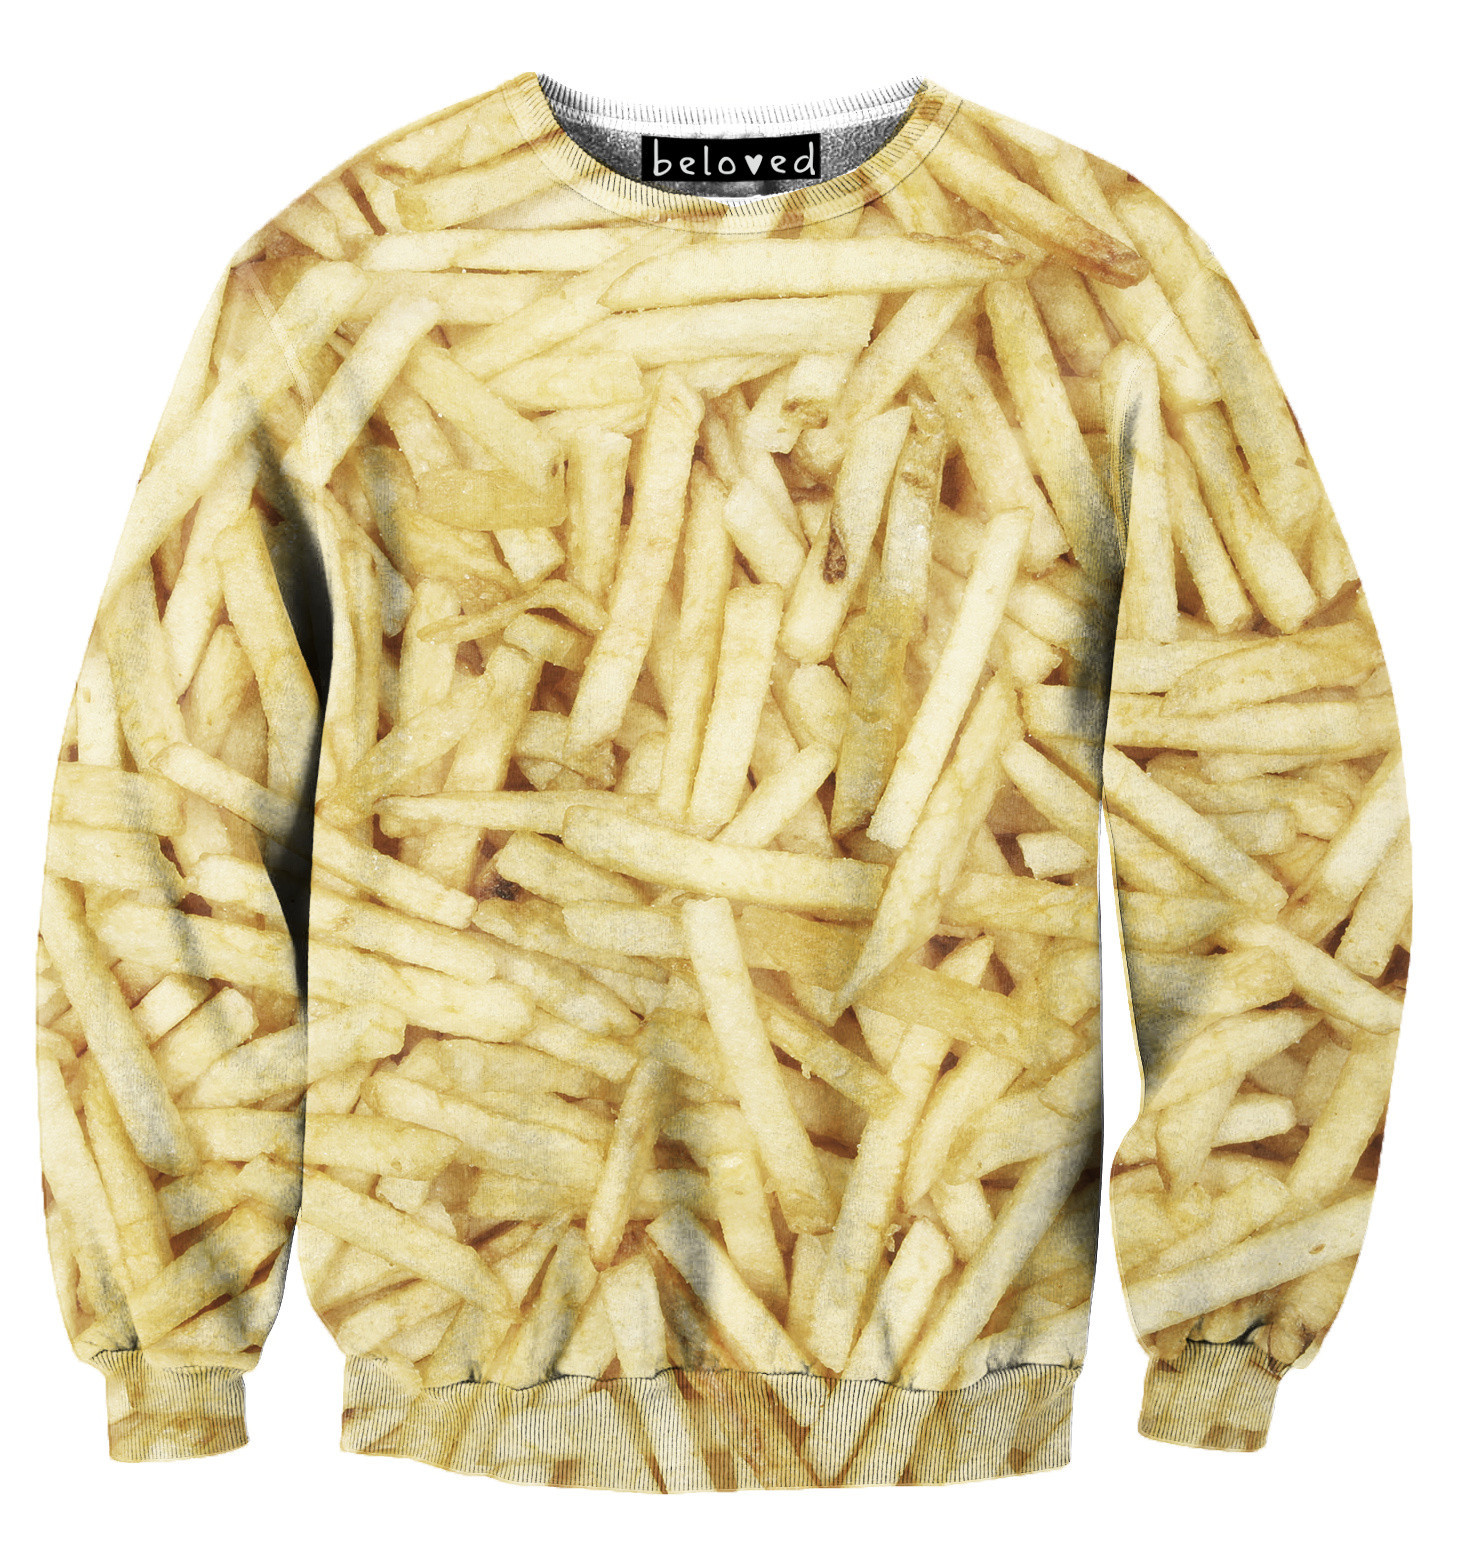 0-fries-png_2048x2048